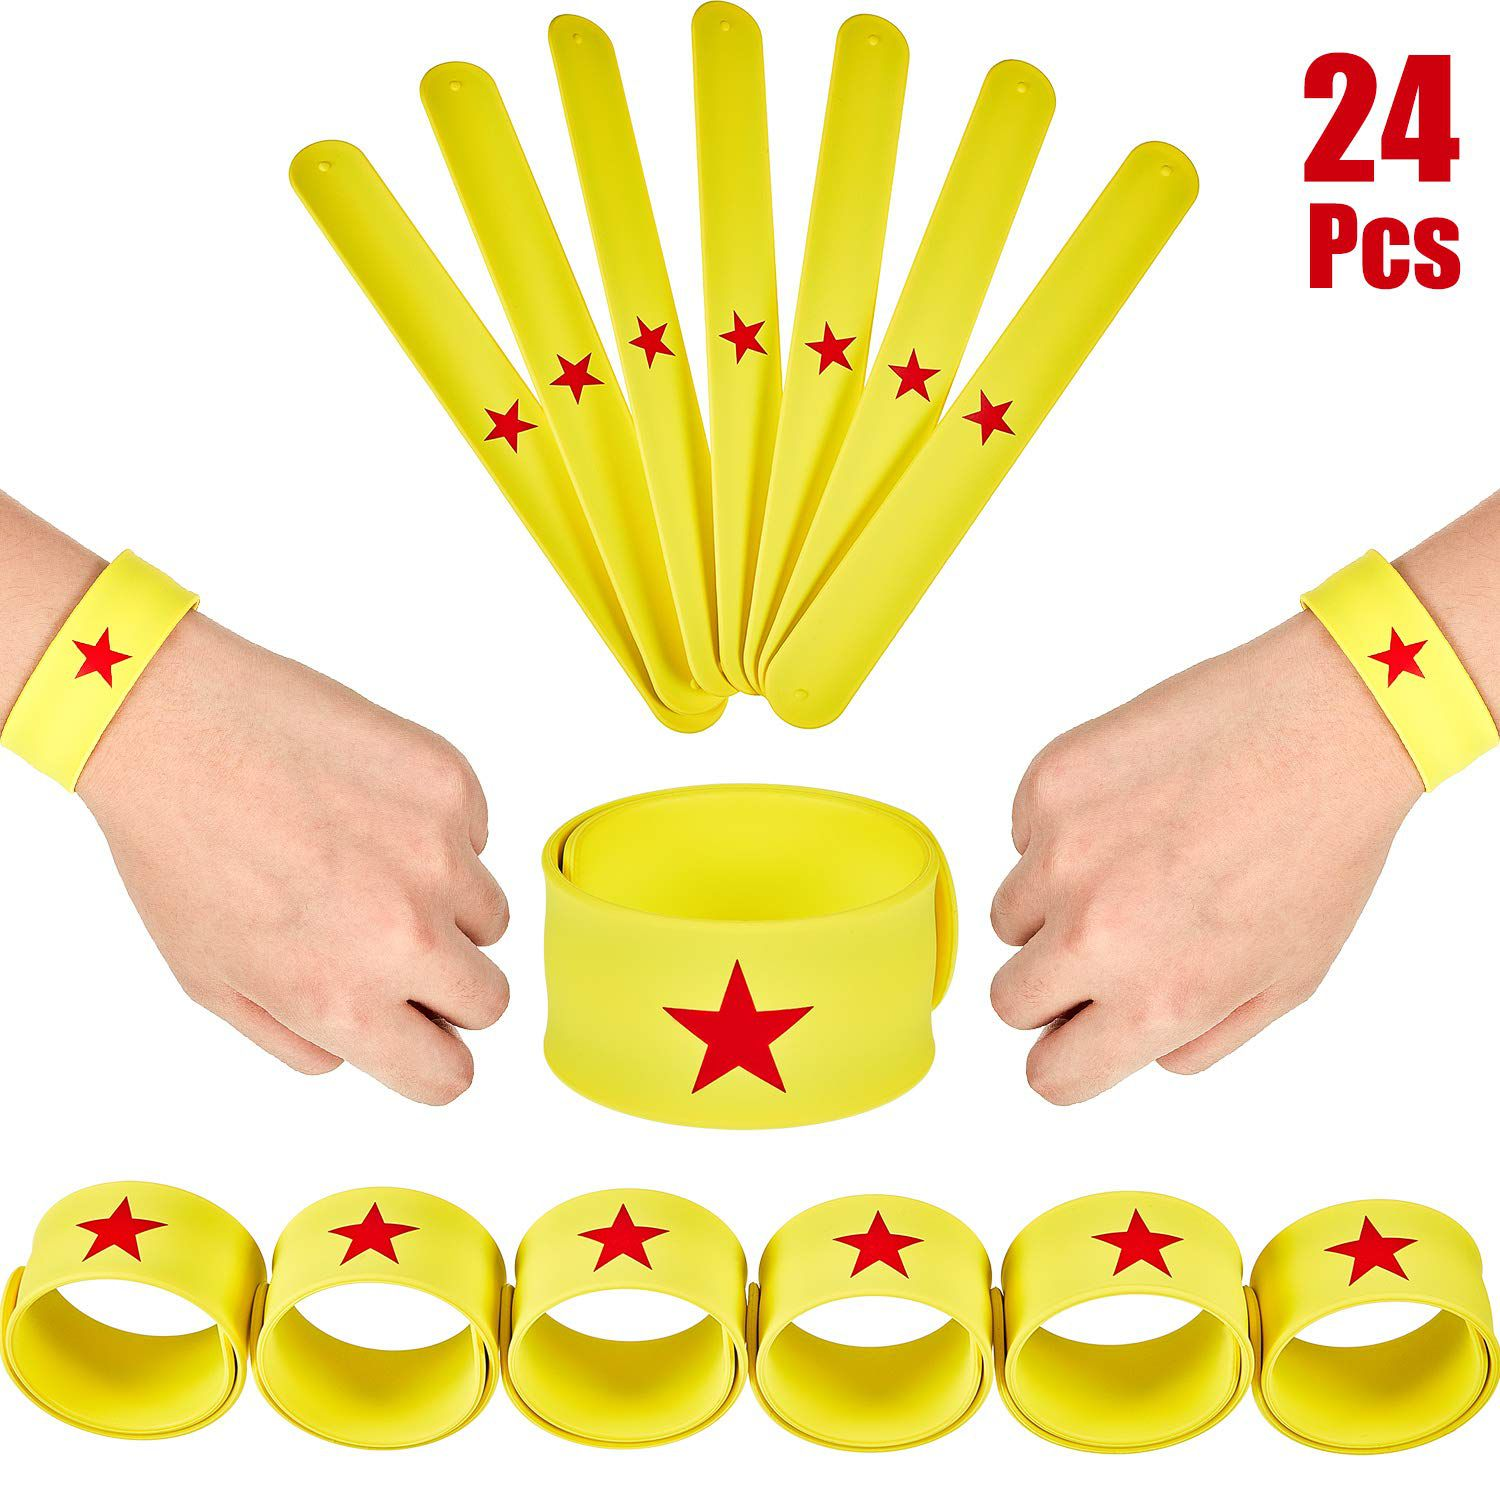 Wonder Woman slap bracelets